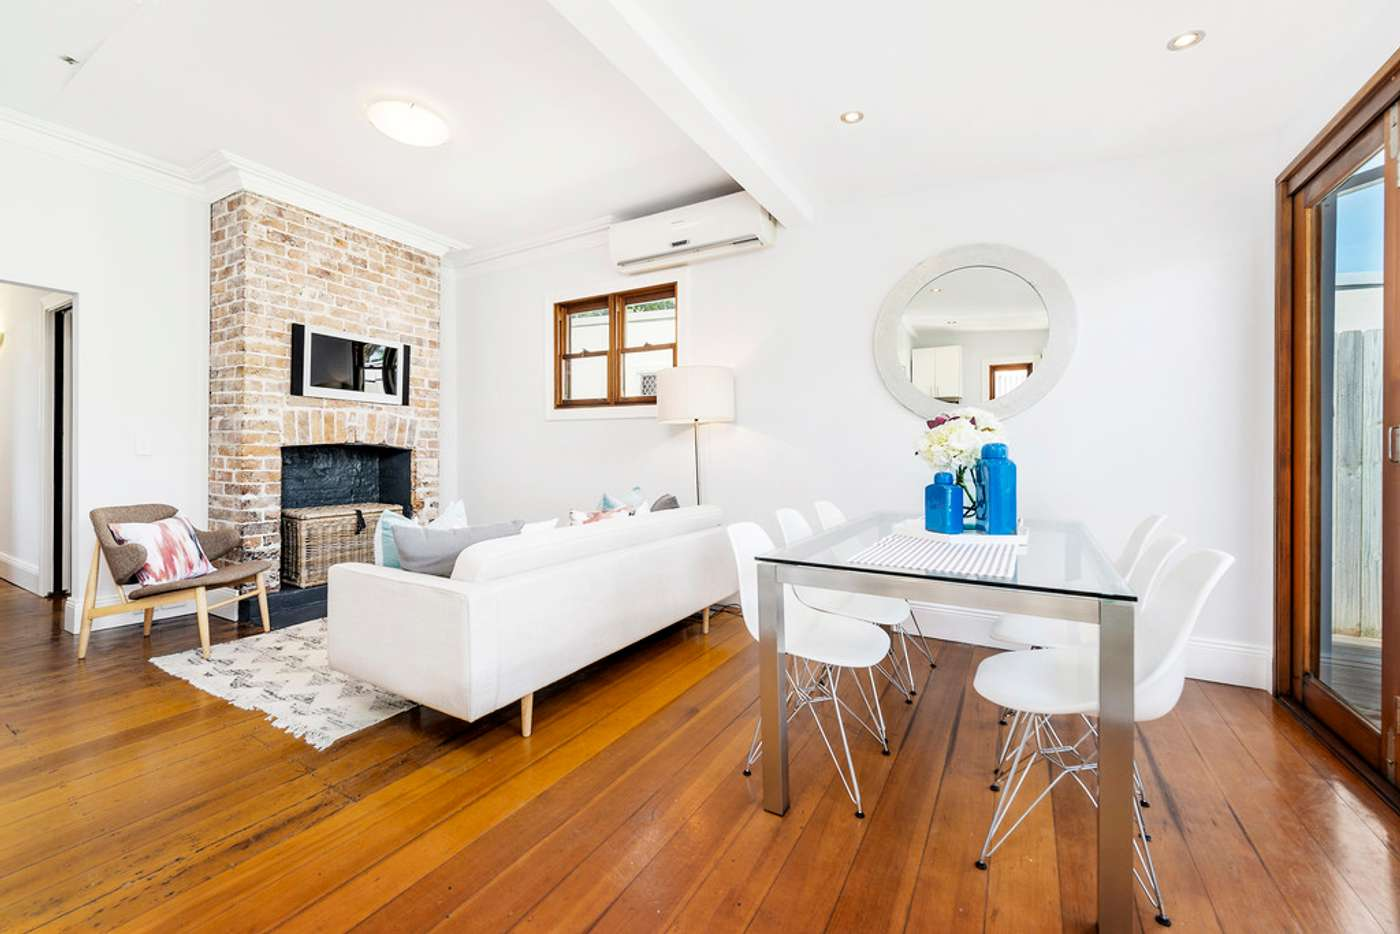 Fifth view of Homely house listing, 50 Allen Street, Leichhardt NSW 2040